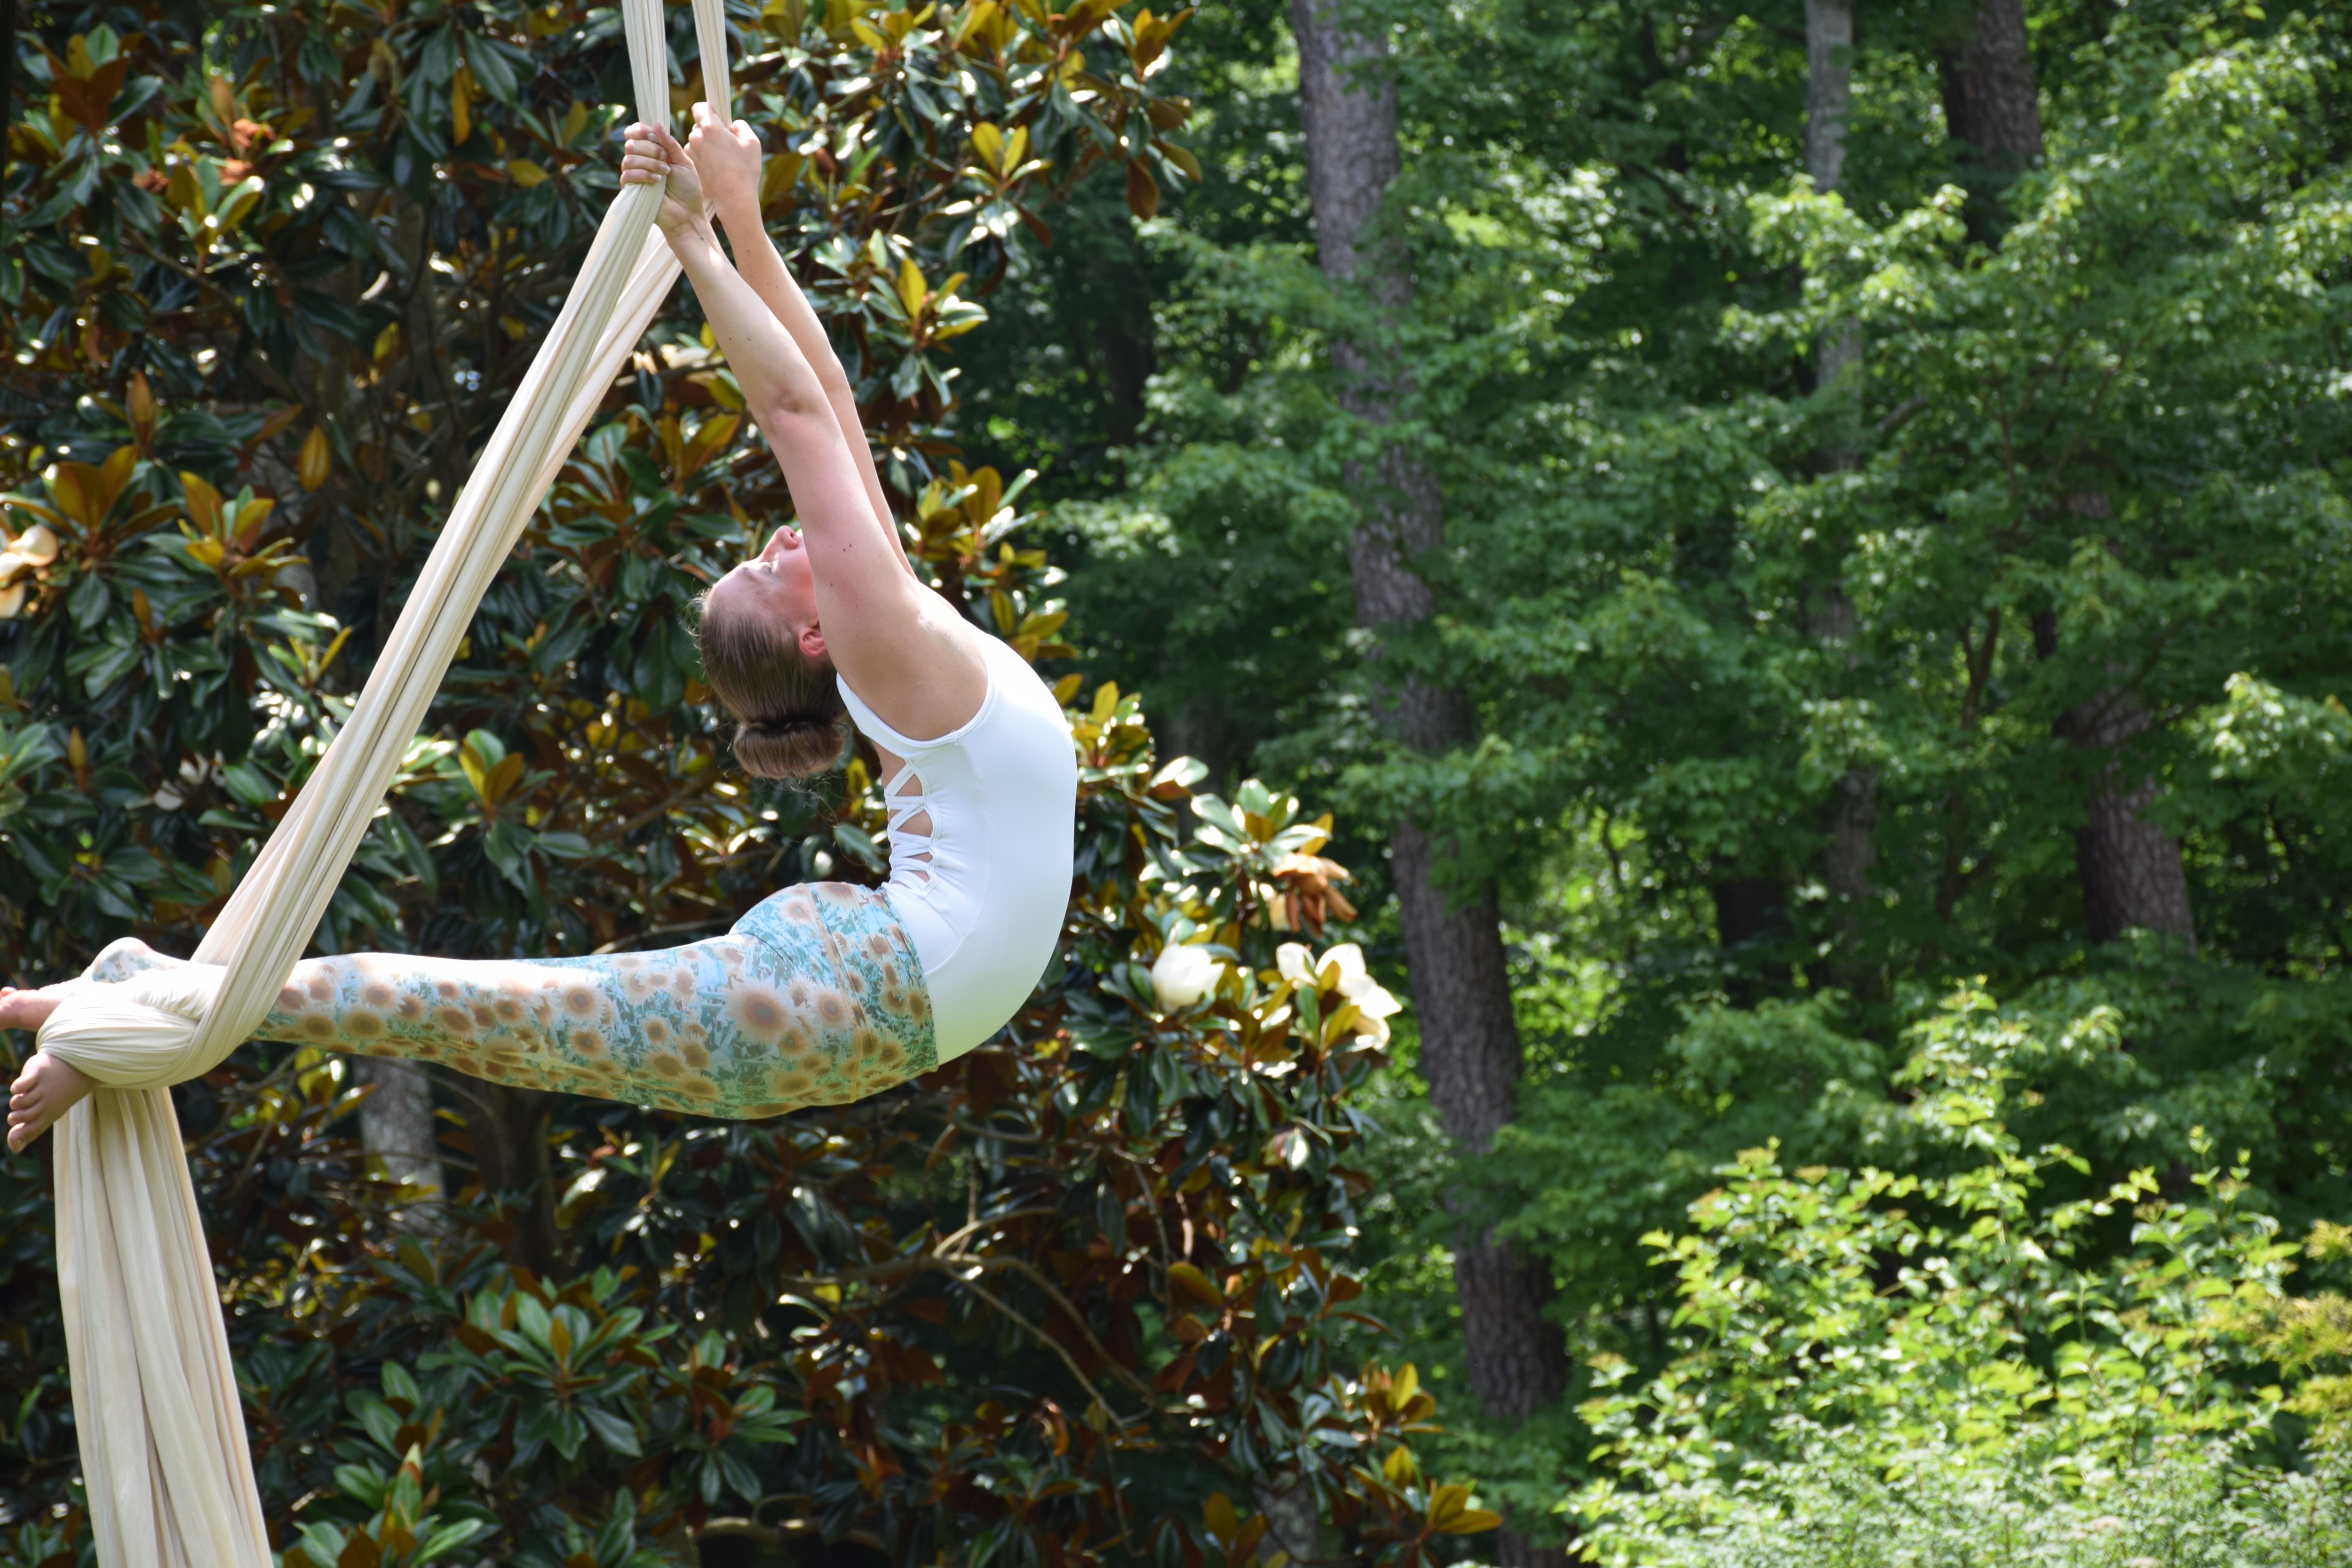 WOman performing an aerial routine